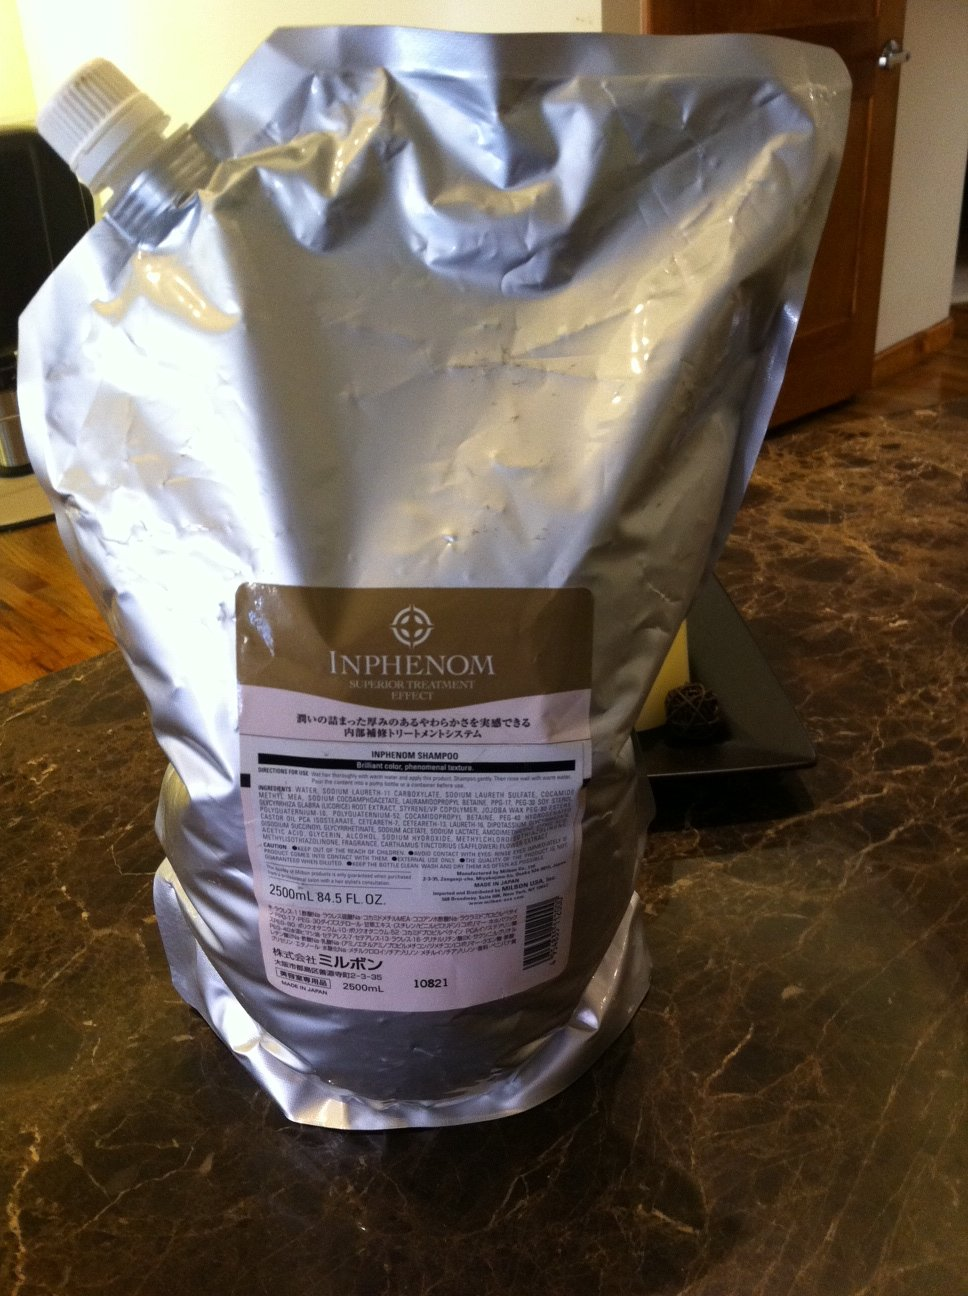 Inphenom Treatment (88.2 oz - refill bag) by Inphenom (Image #1)